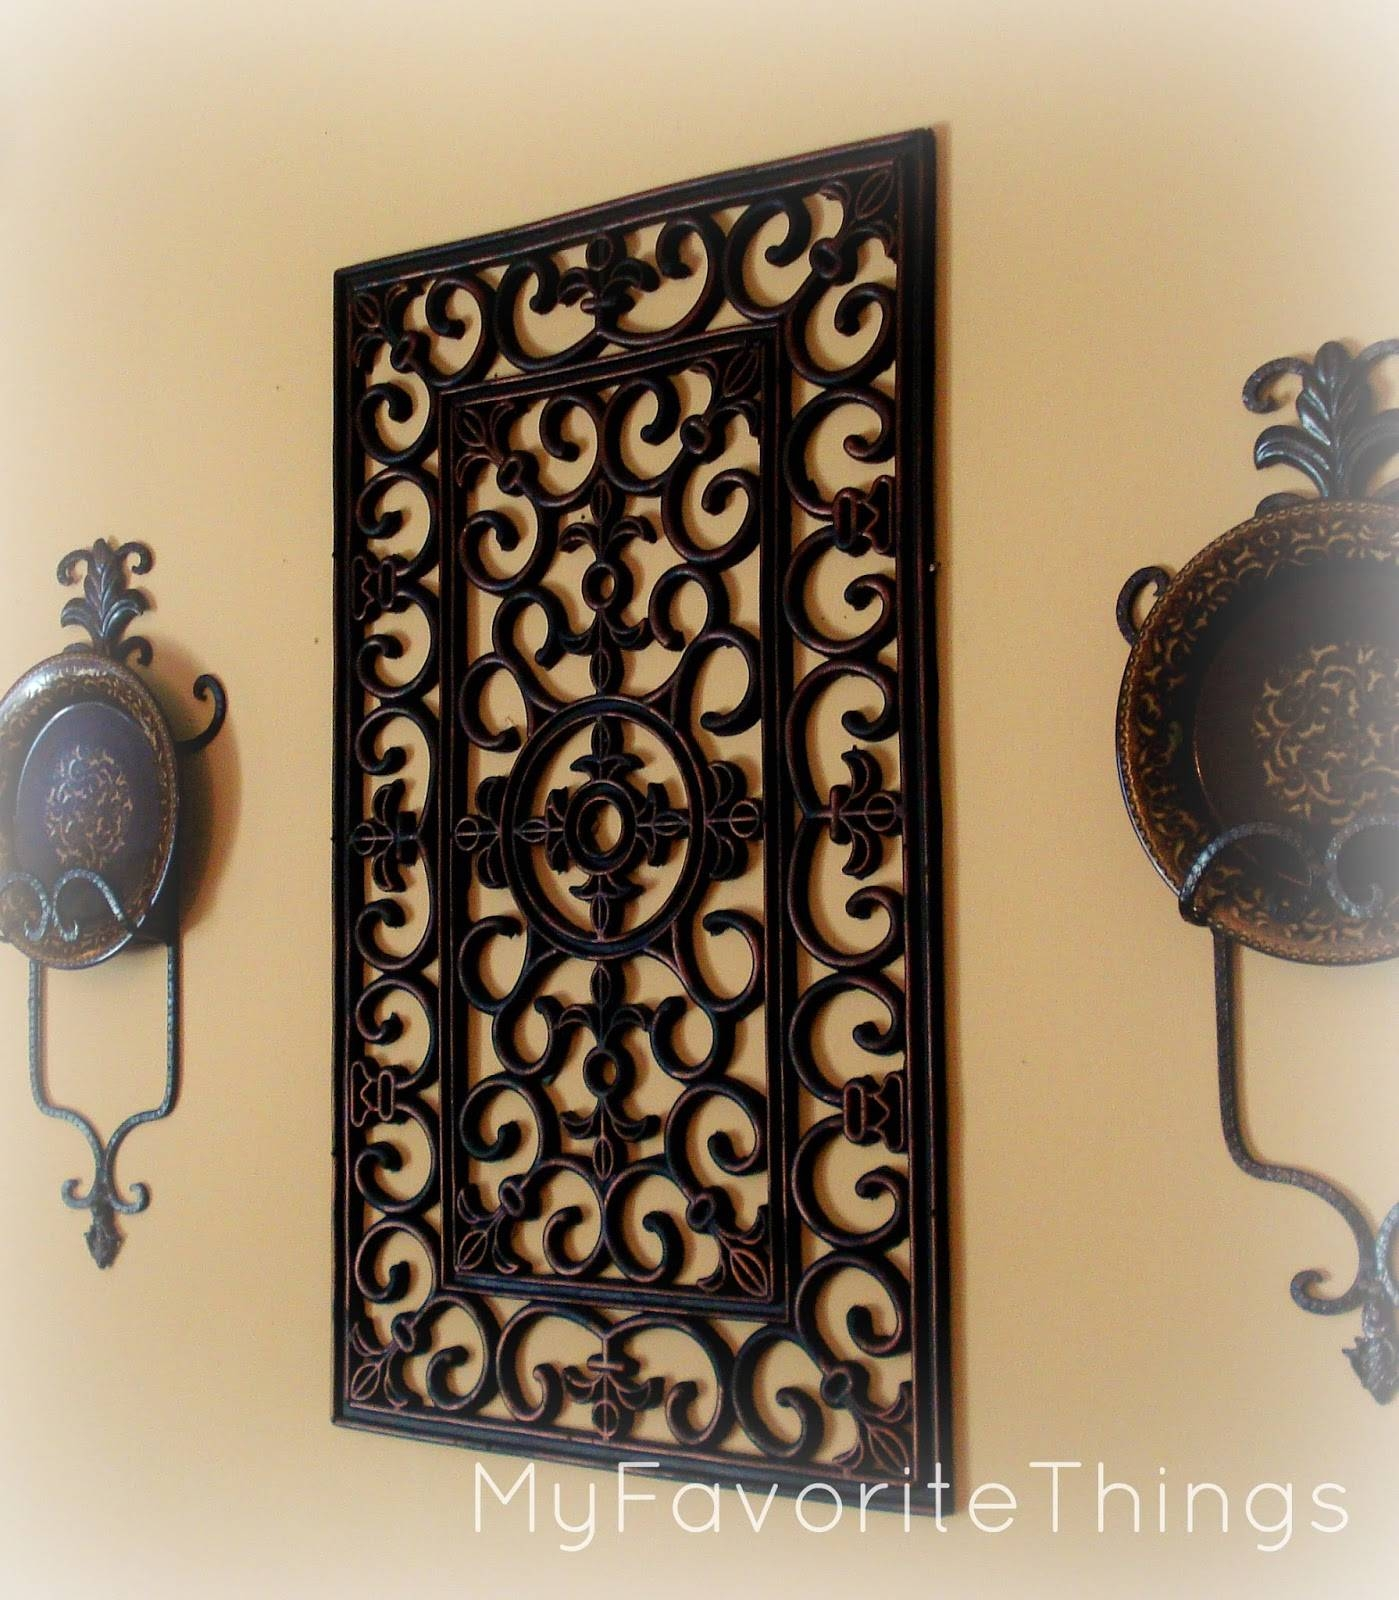 Wall Decor: Top 20 Rustic Wrought Iron Wall Decor How To Hang With Regard To Current Tuscan Wrought Iron Wall Art (View 19 of 20)